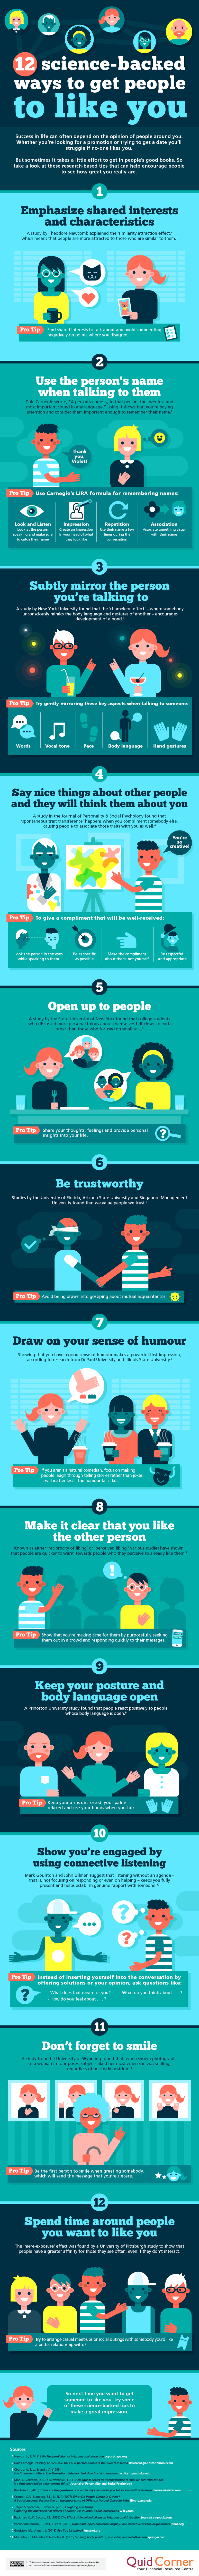 An infographic about improving workplace relationships